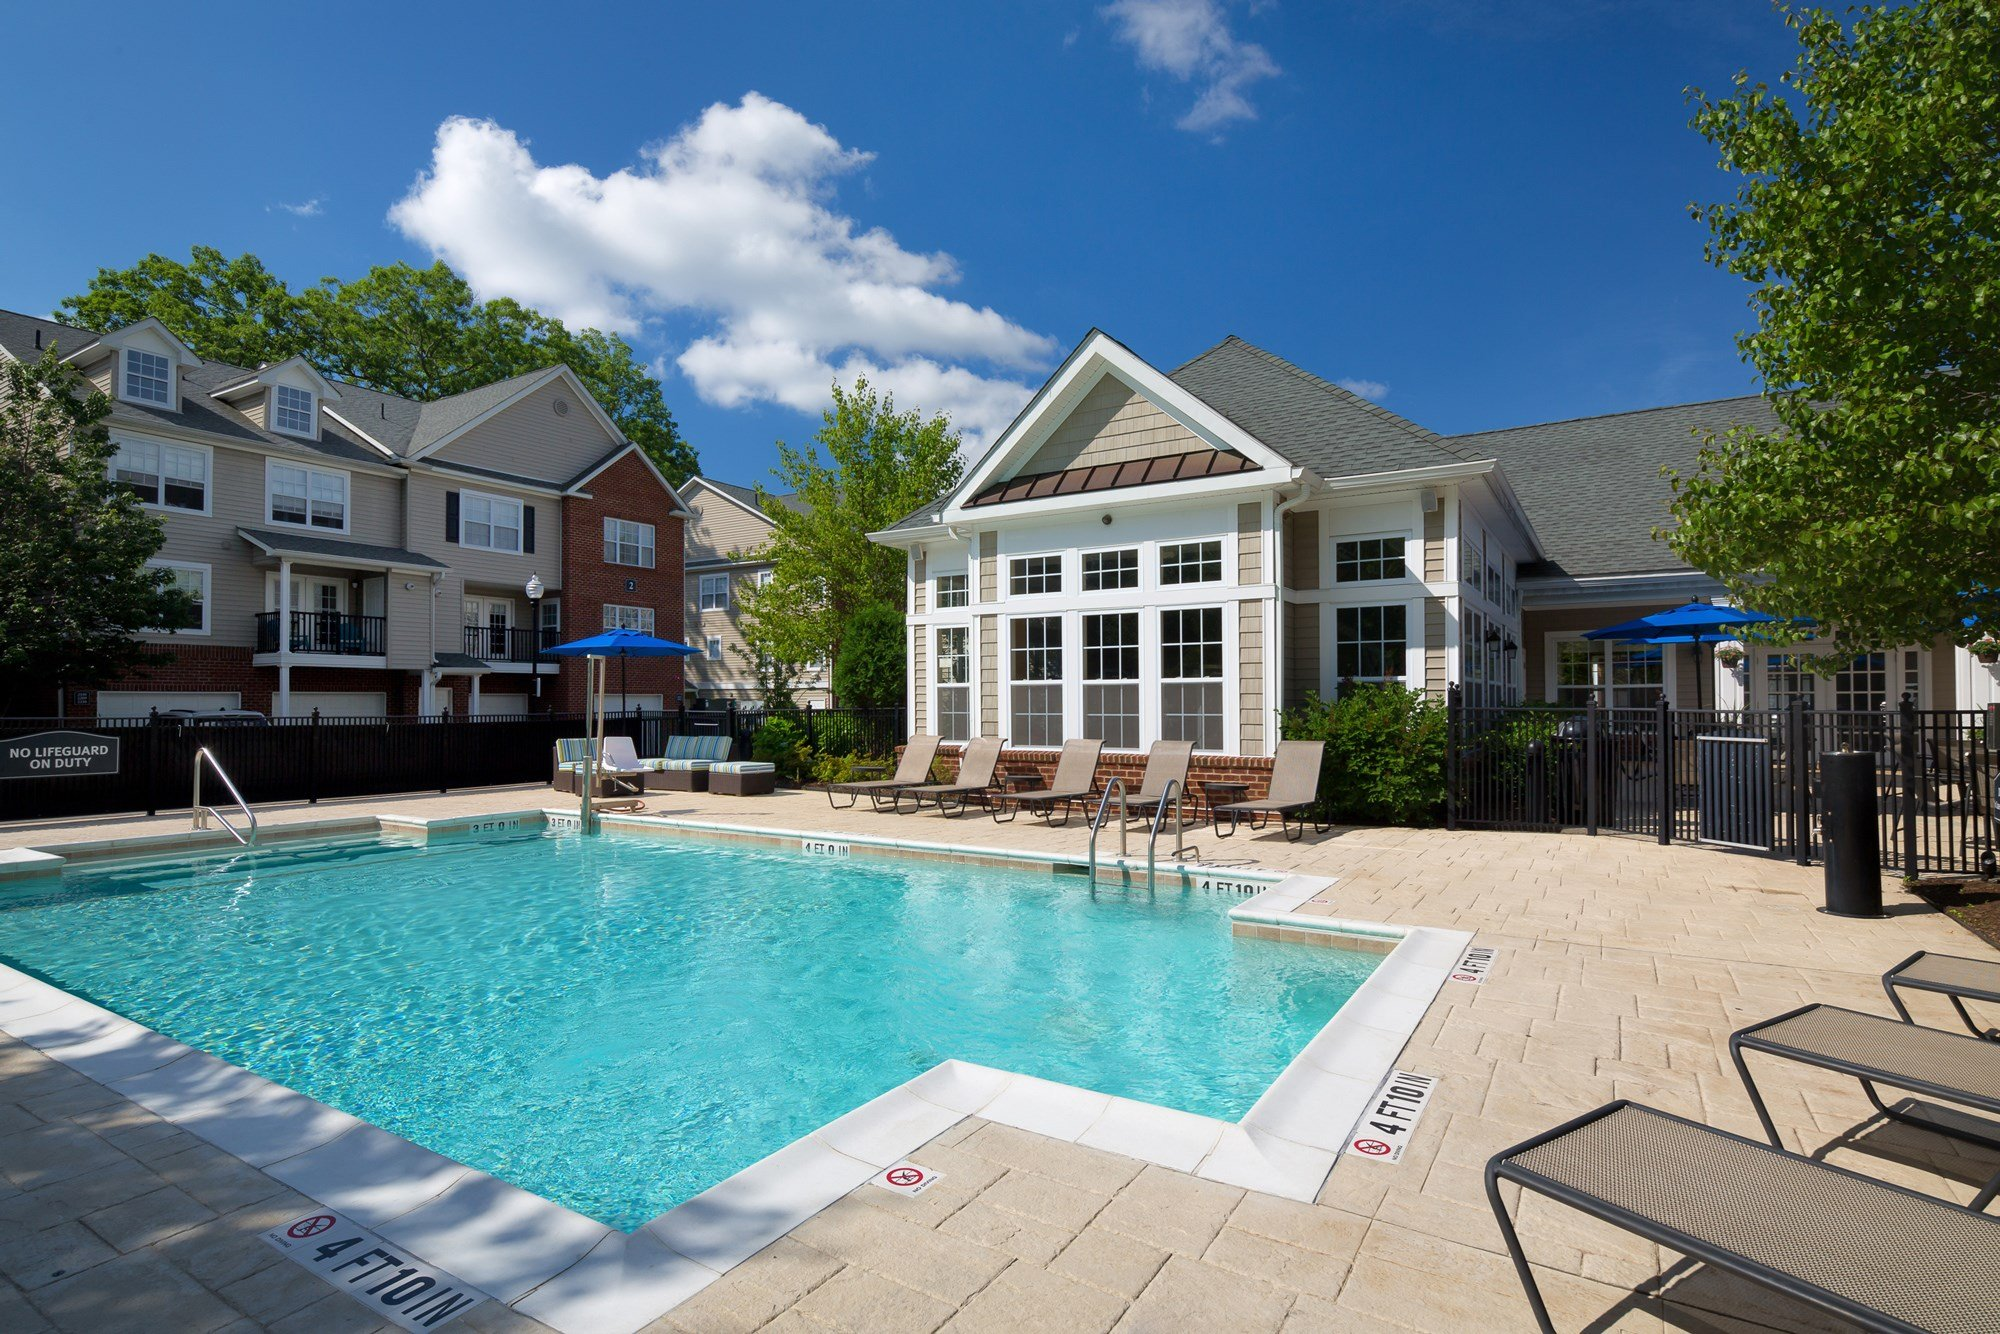 Swimming Pool at Huntington Townhomes in Shelton, CT